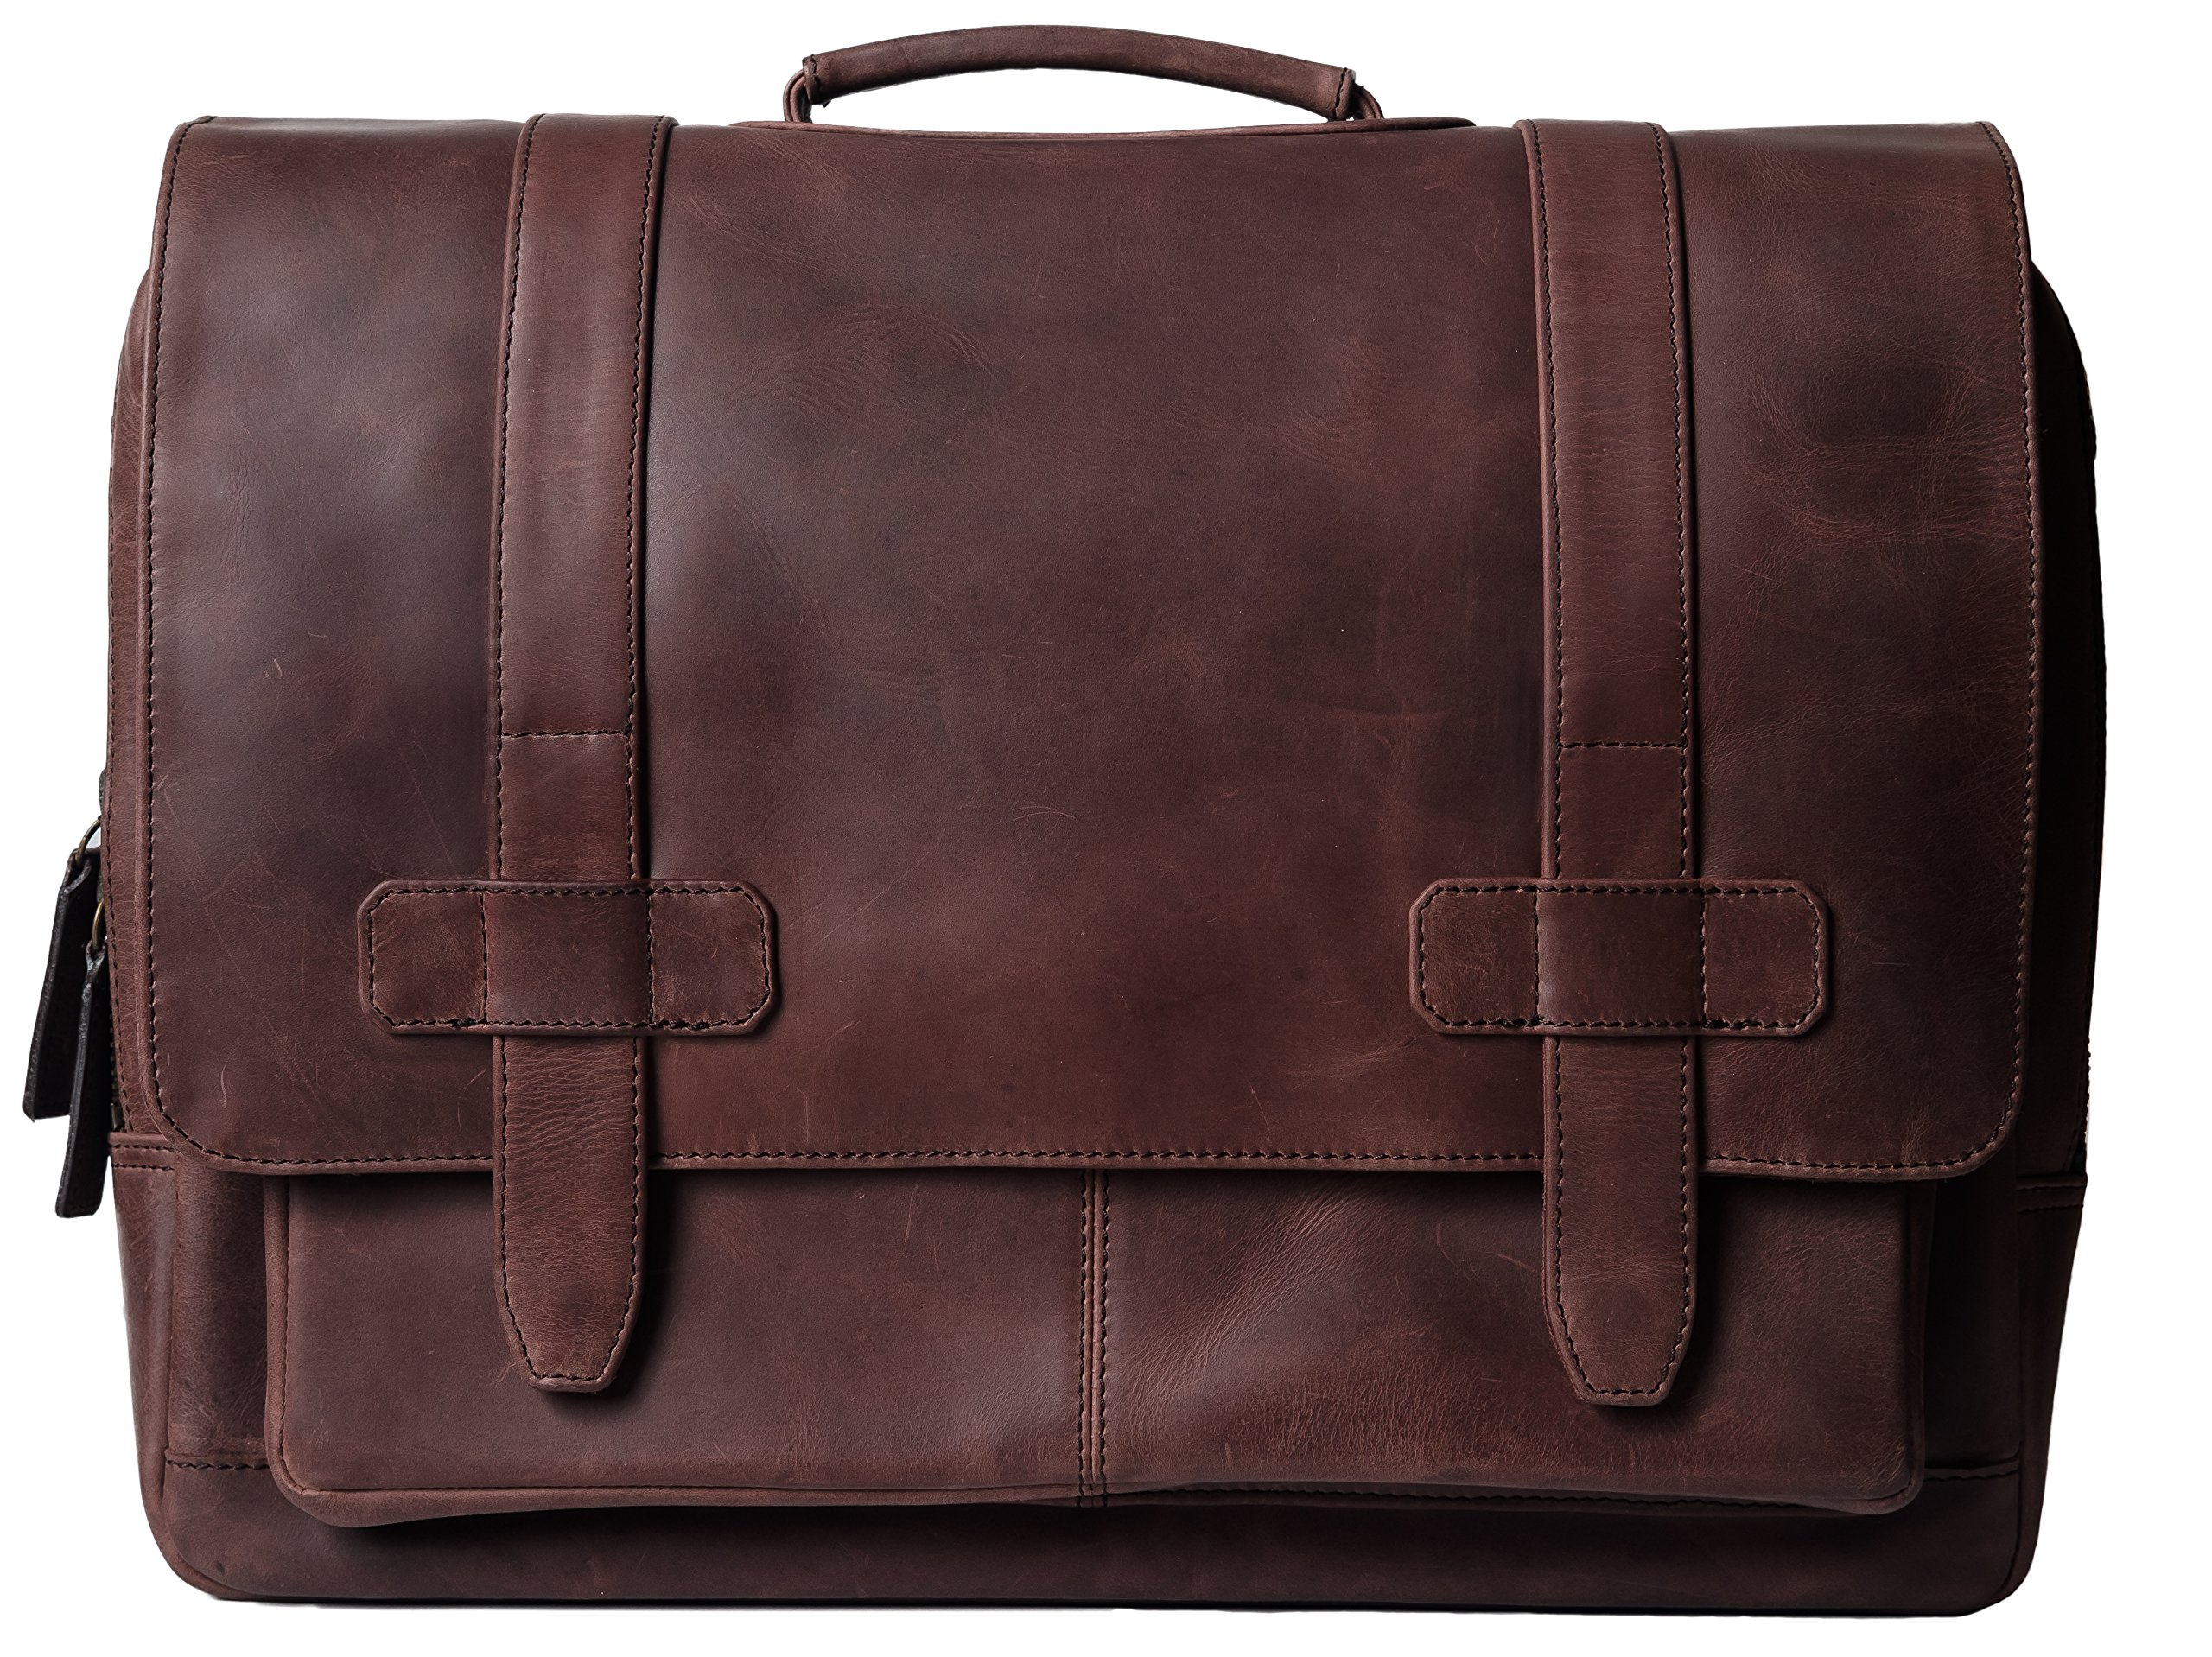 Genuine Leather Messenger Laptop Bag/Briefcase for Men, LOGAN, fits 15.4 inch Laptop, adjustable strap, 16 inch by 12 inch by 4 inch (Dark Chestnut) by Ladderback